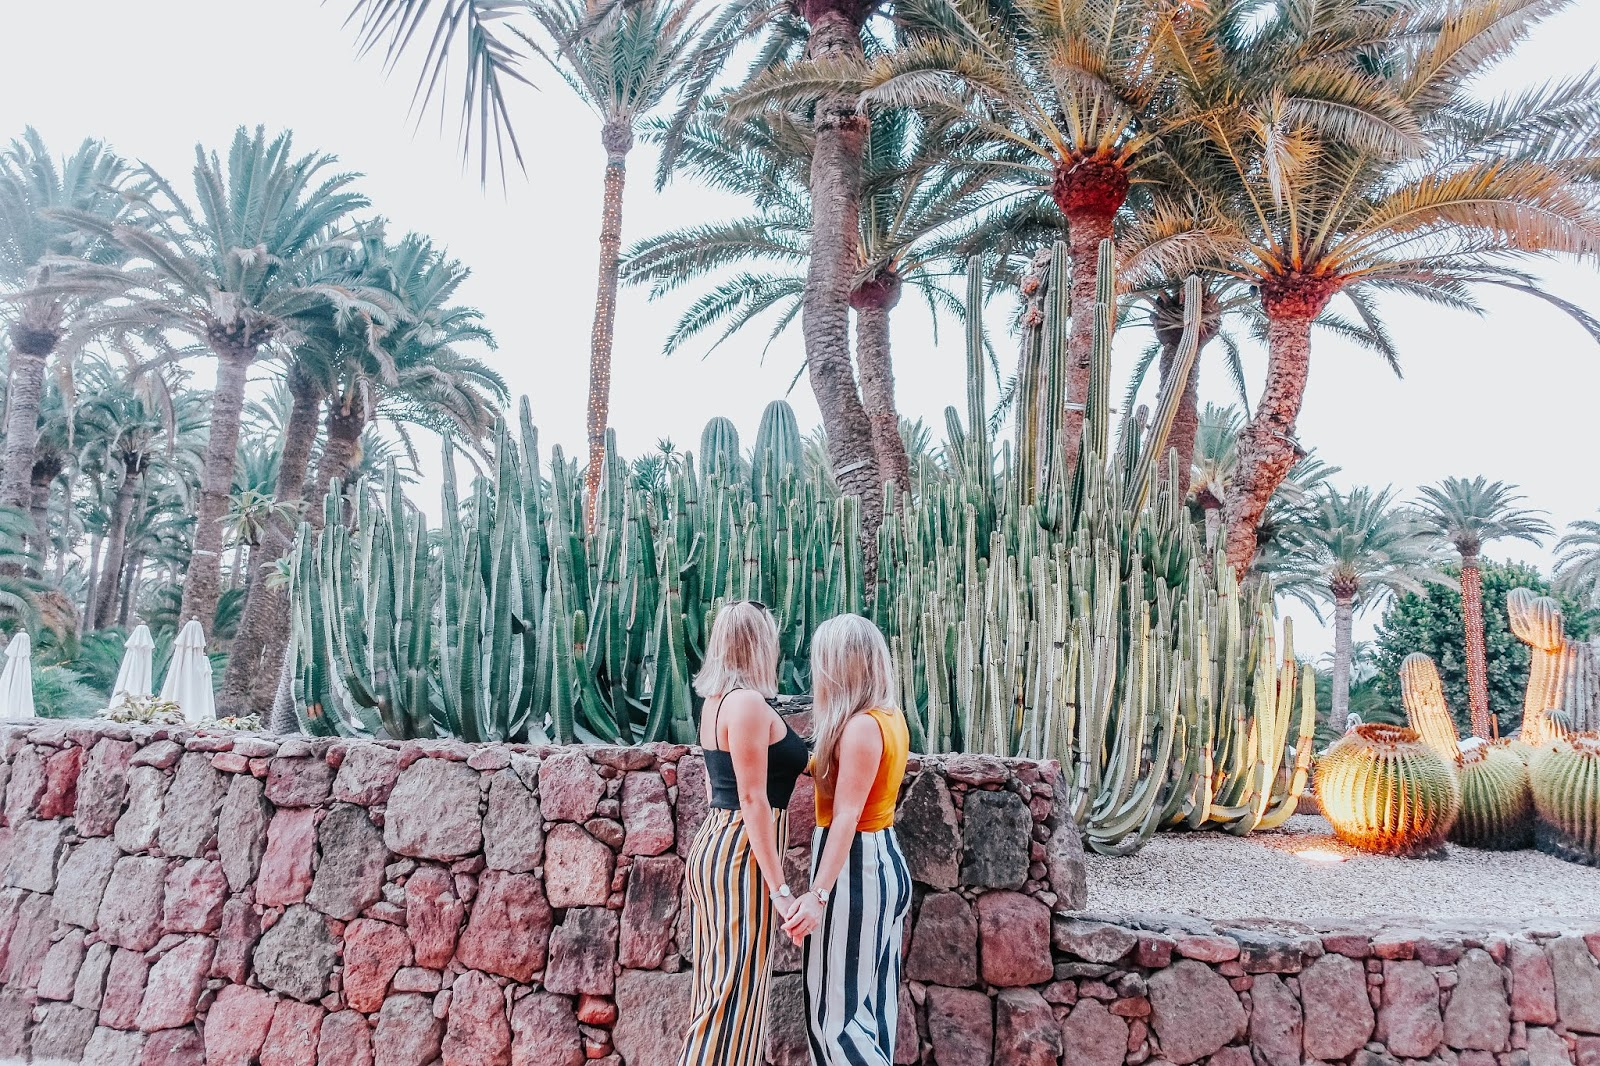 married lesbian couple having a photo by the palm trees and cacti